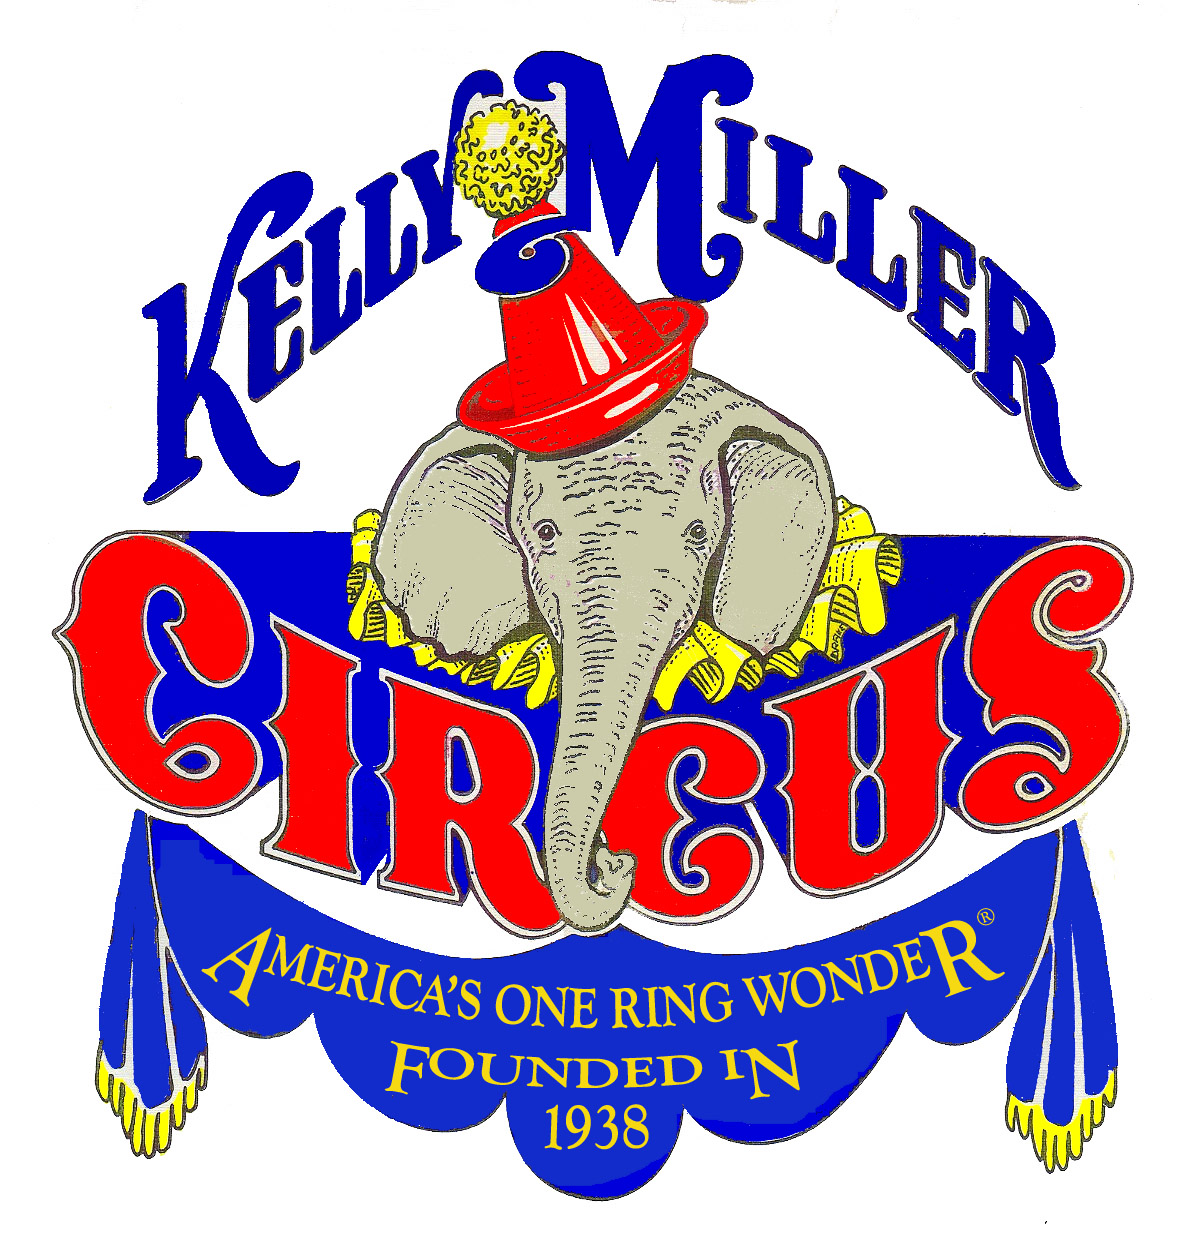 Kelly Miller Circus brings the Big Top to Harford County! – {June 1}